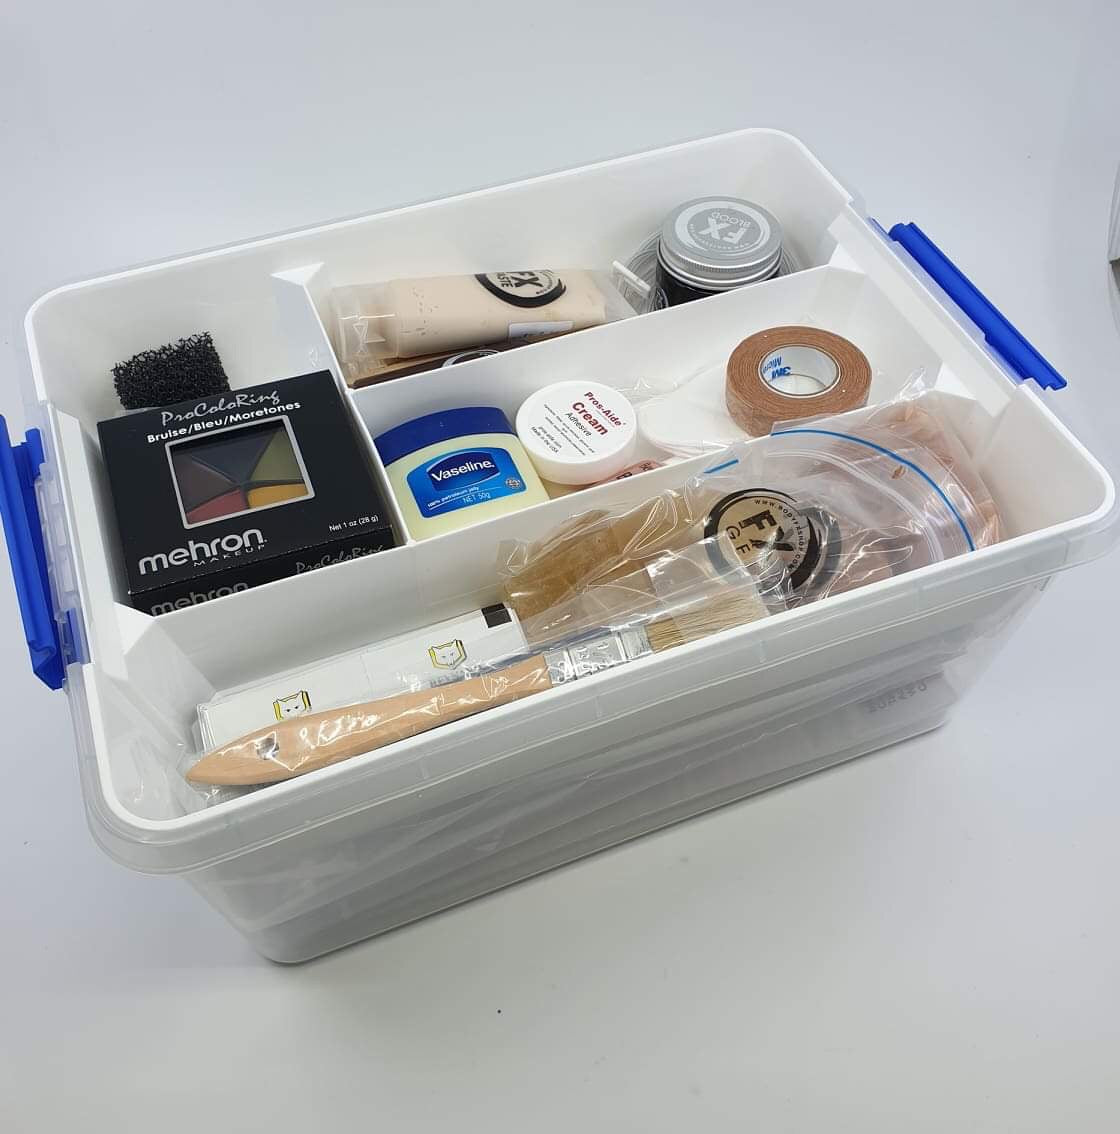 LARGE TRAUMA MOULAGE KIT